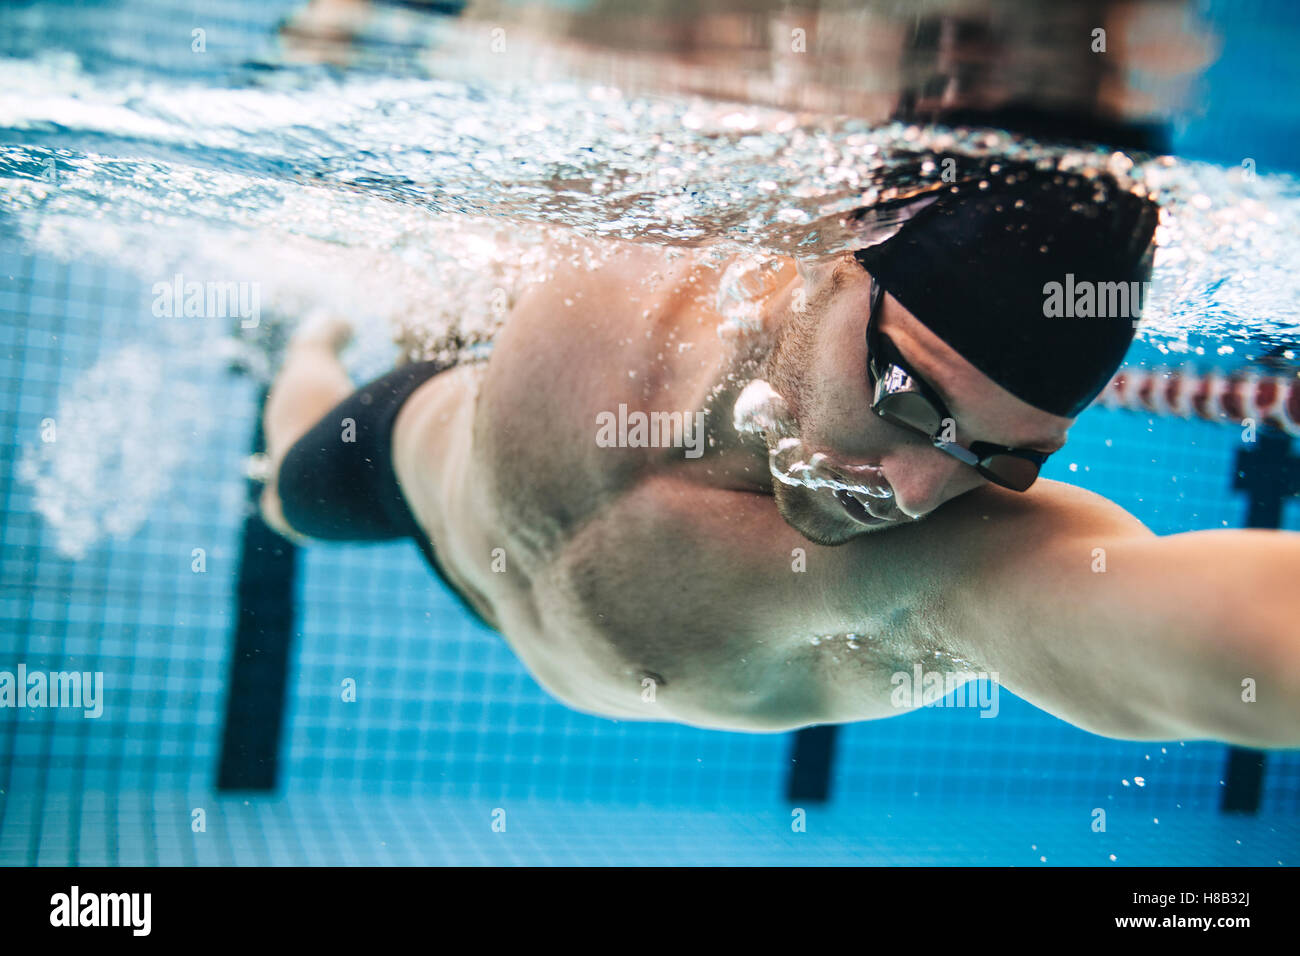 Professional male swimmer practising in swimming pool. Underwater shot of young sportsman swimming in pool. Stock Photo